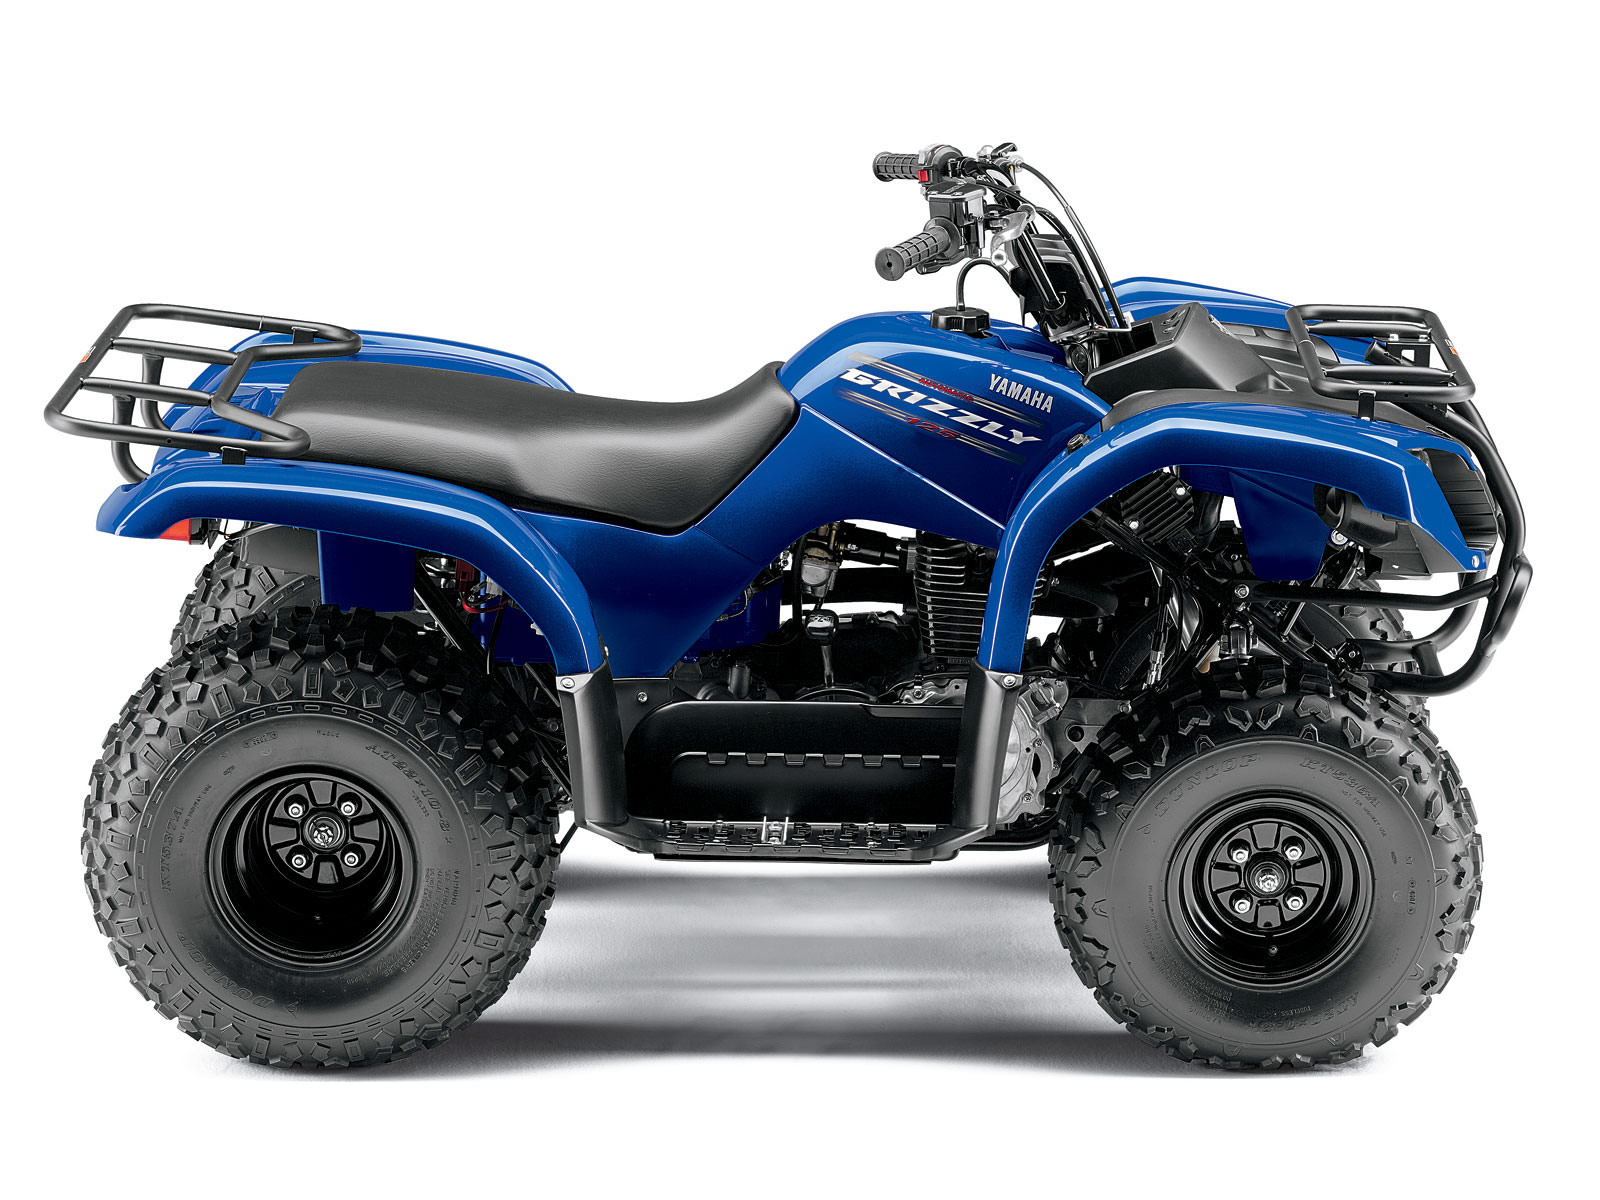 2014 yamaha 450 atv release date autos weblog for 2014 yamaha atv